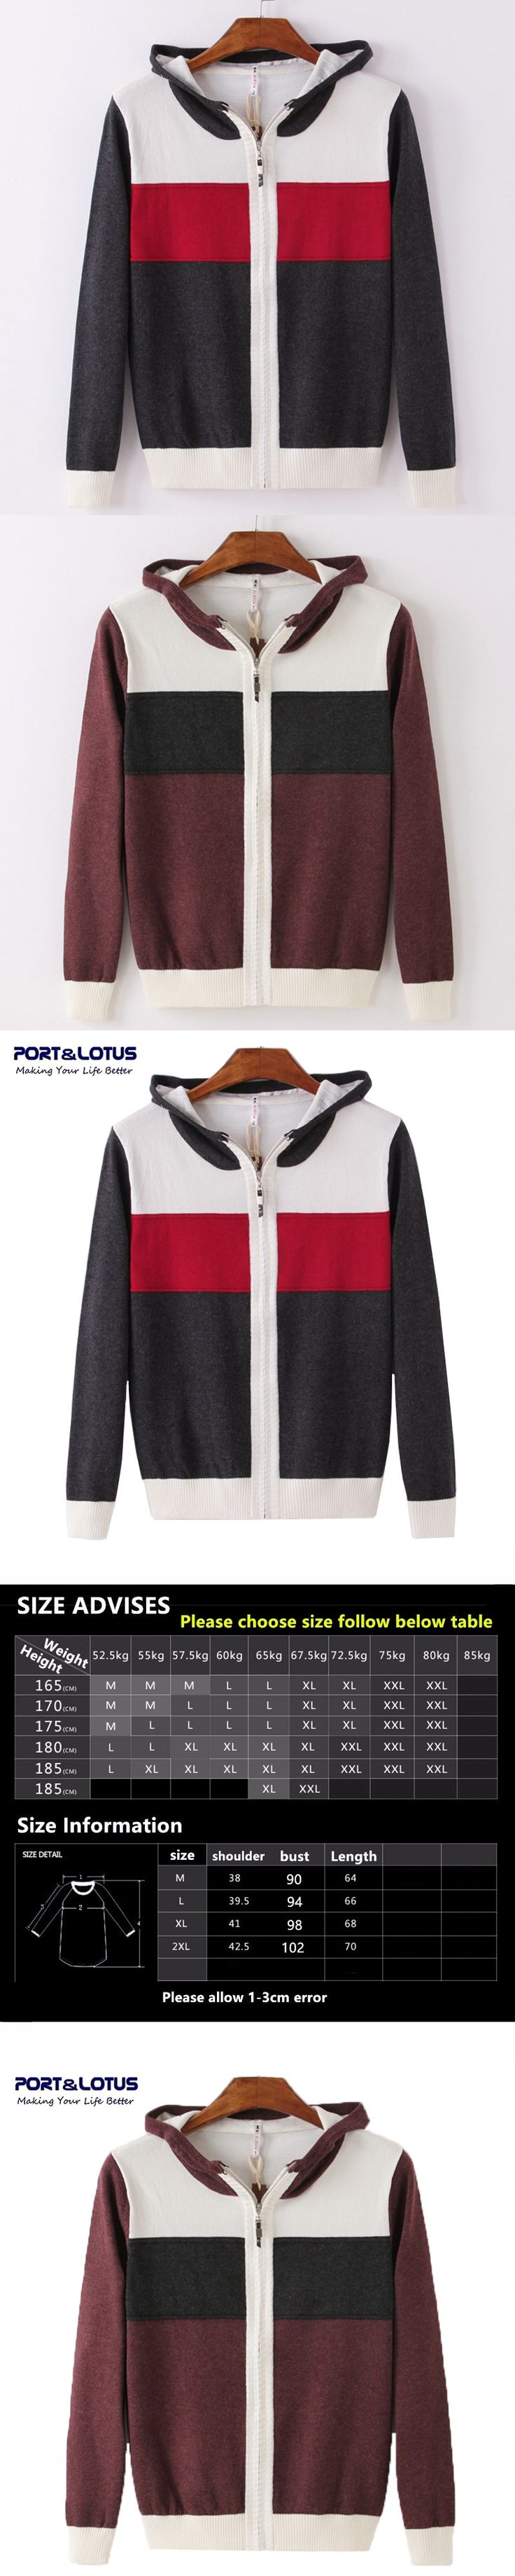 PORT&LOTUS Men's Knitted Sweaters Contrast With Hat Brand Clothing Pullover Sweater Male Cardigans Warm Men's Sweaters LSQF130